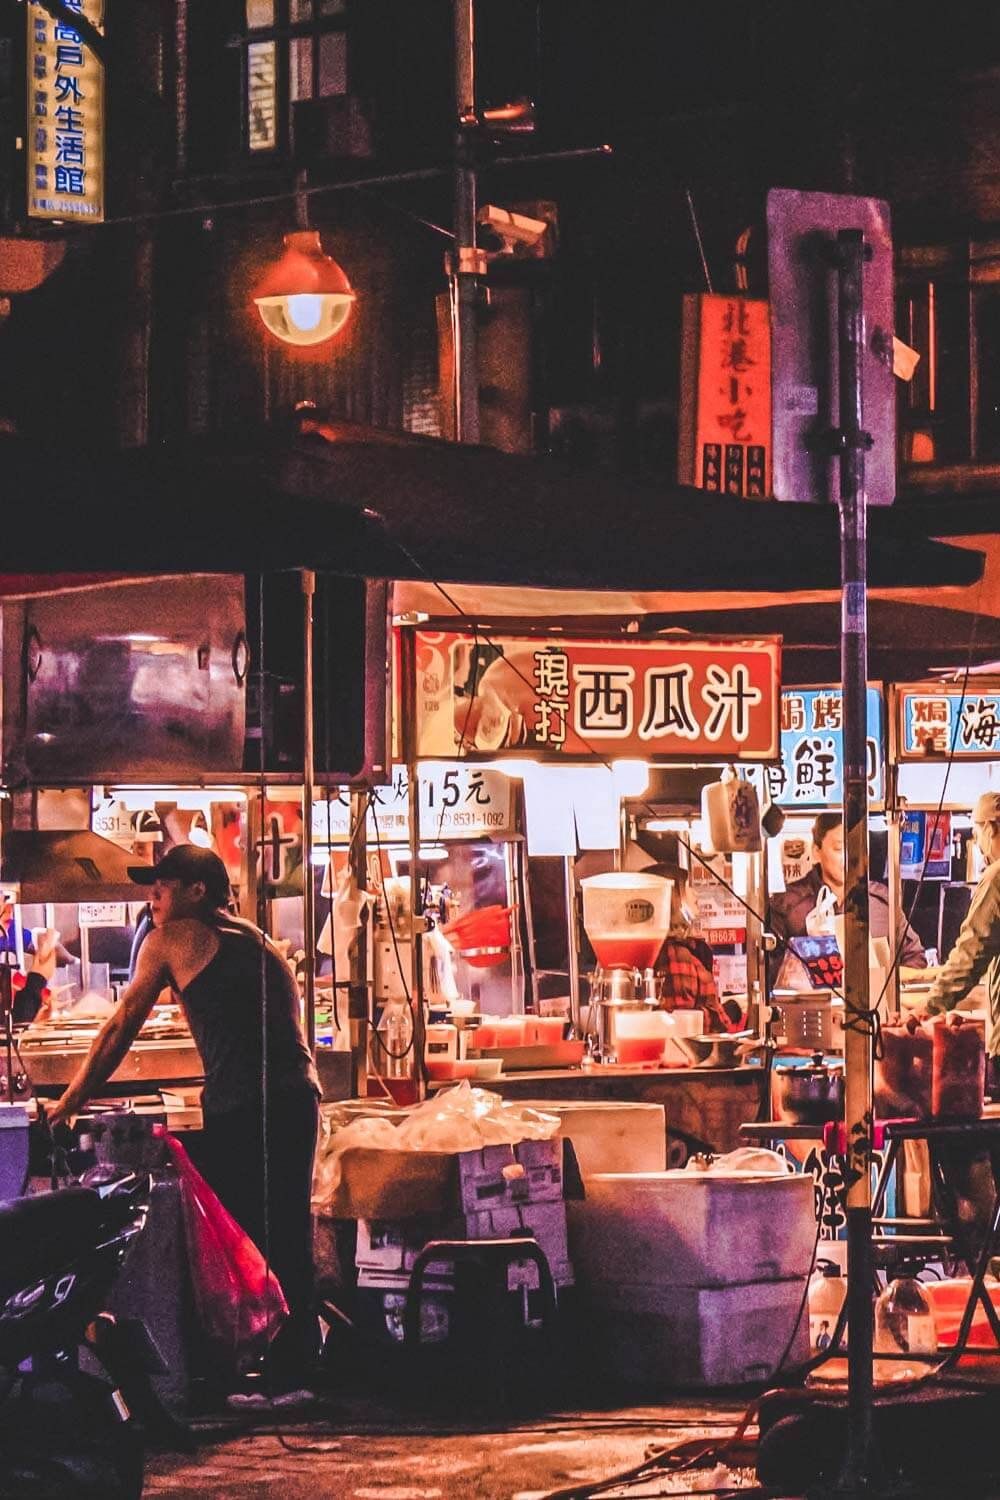 Explore the 7 Best Taipei Night Markets! When talking about amazing cities worth a visit, Taipei Taiwan isn't mentioned nearly enough. This Taiwan travel guide will help you discover the best food in Taipei, the best shopping, and which night markets are worth a visit. You will not be disappointed! #avenlylanetravel #travelinspiration #taiwan #taipeitaiwan #beautifulplaces